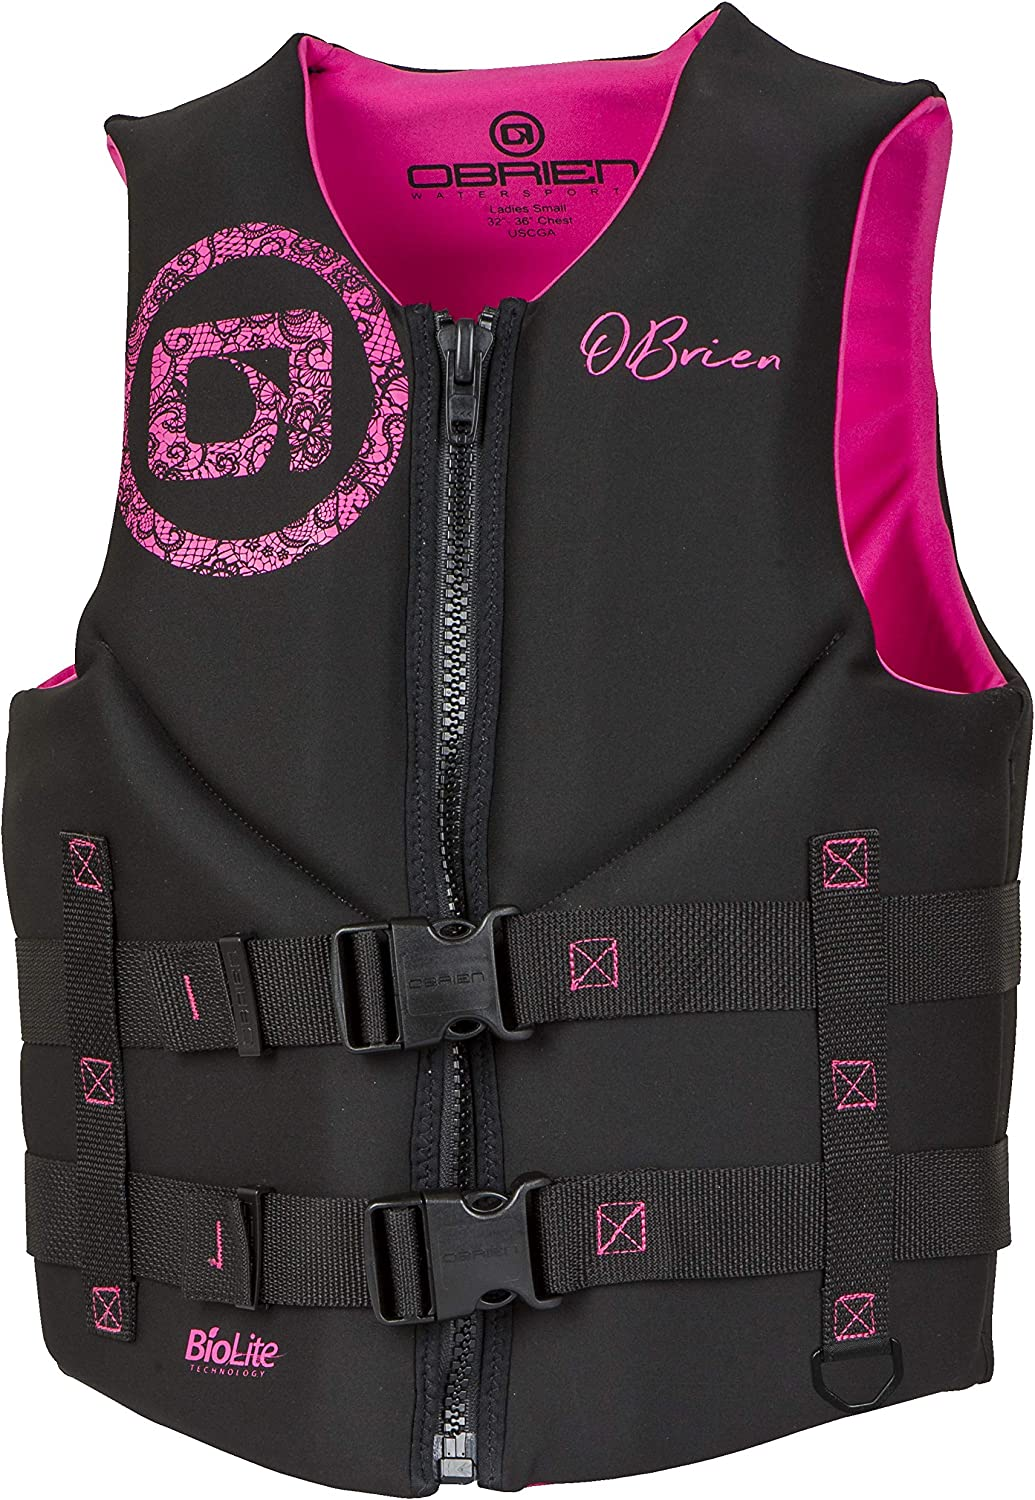 O'Brien Women's Traditional Neoprene Life Jacket, X-Small, Pink